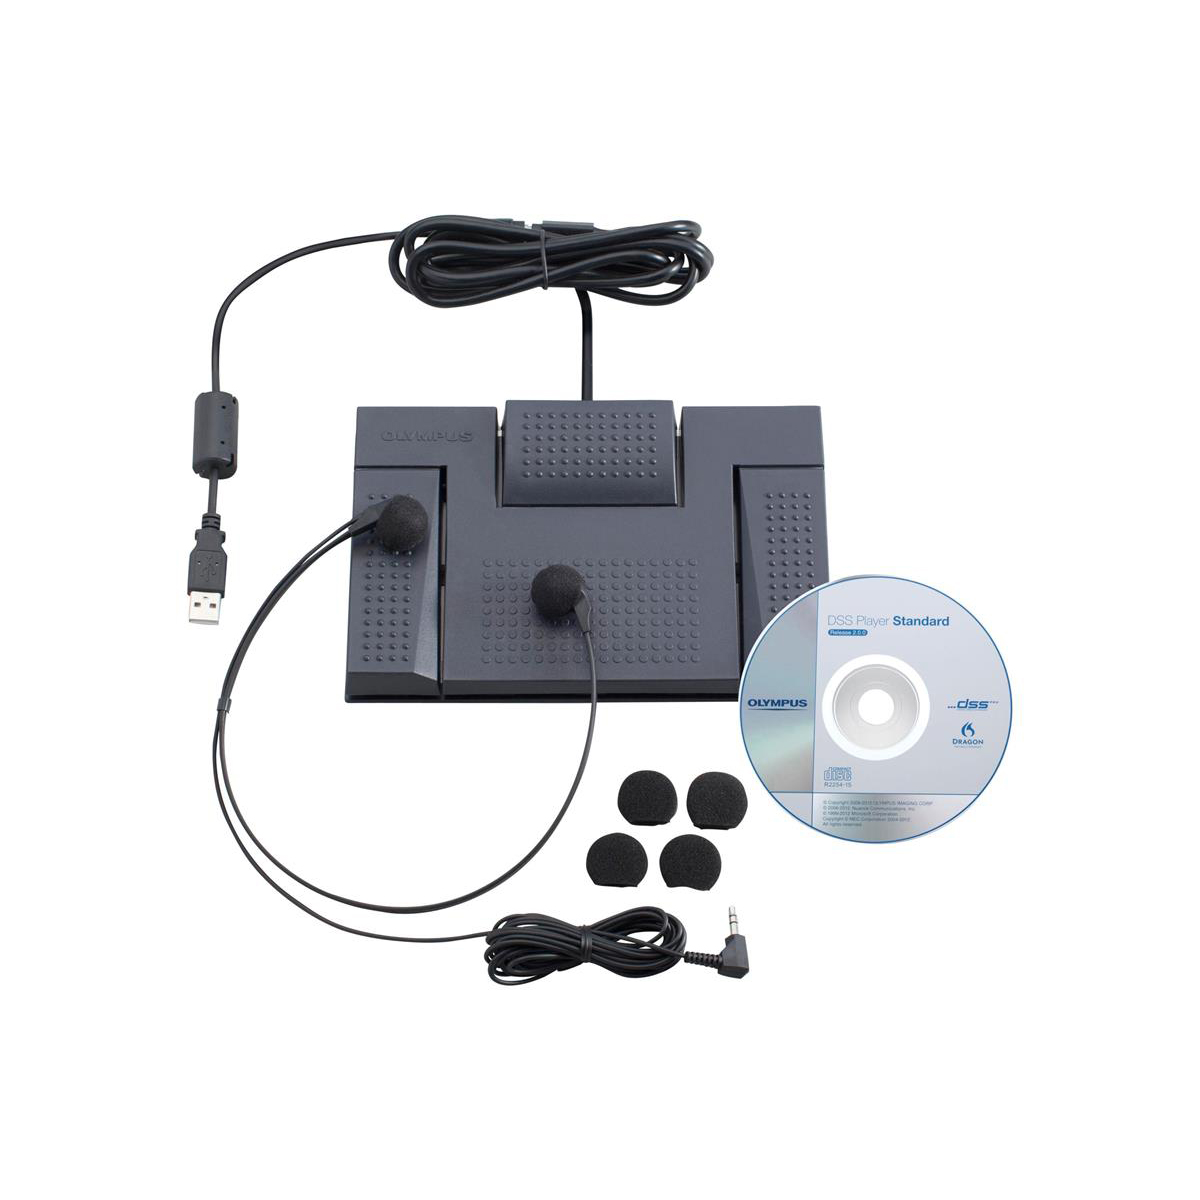 Olympus AS2400 Digital Transcription Kit RS-28 Footswitch E-102 Headset and DSS Software Ref N2275726